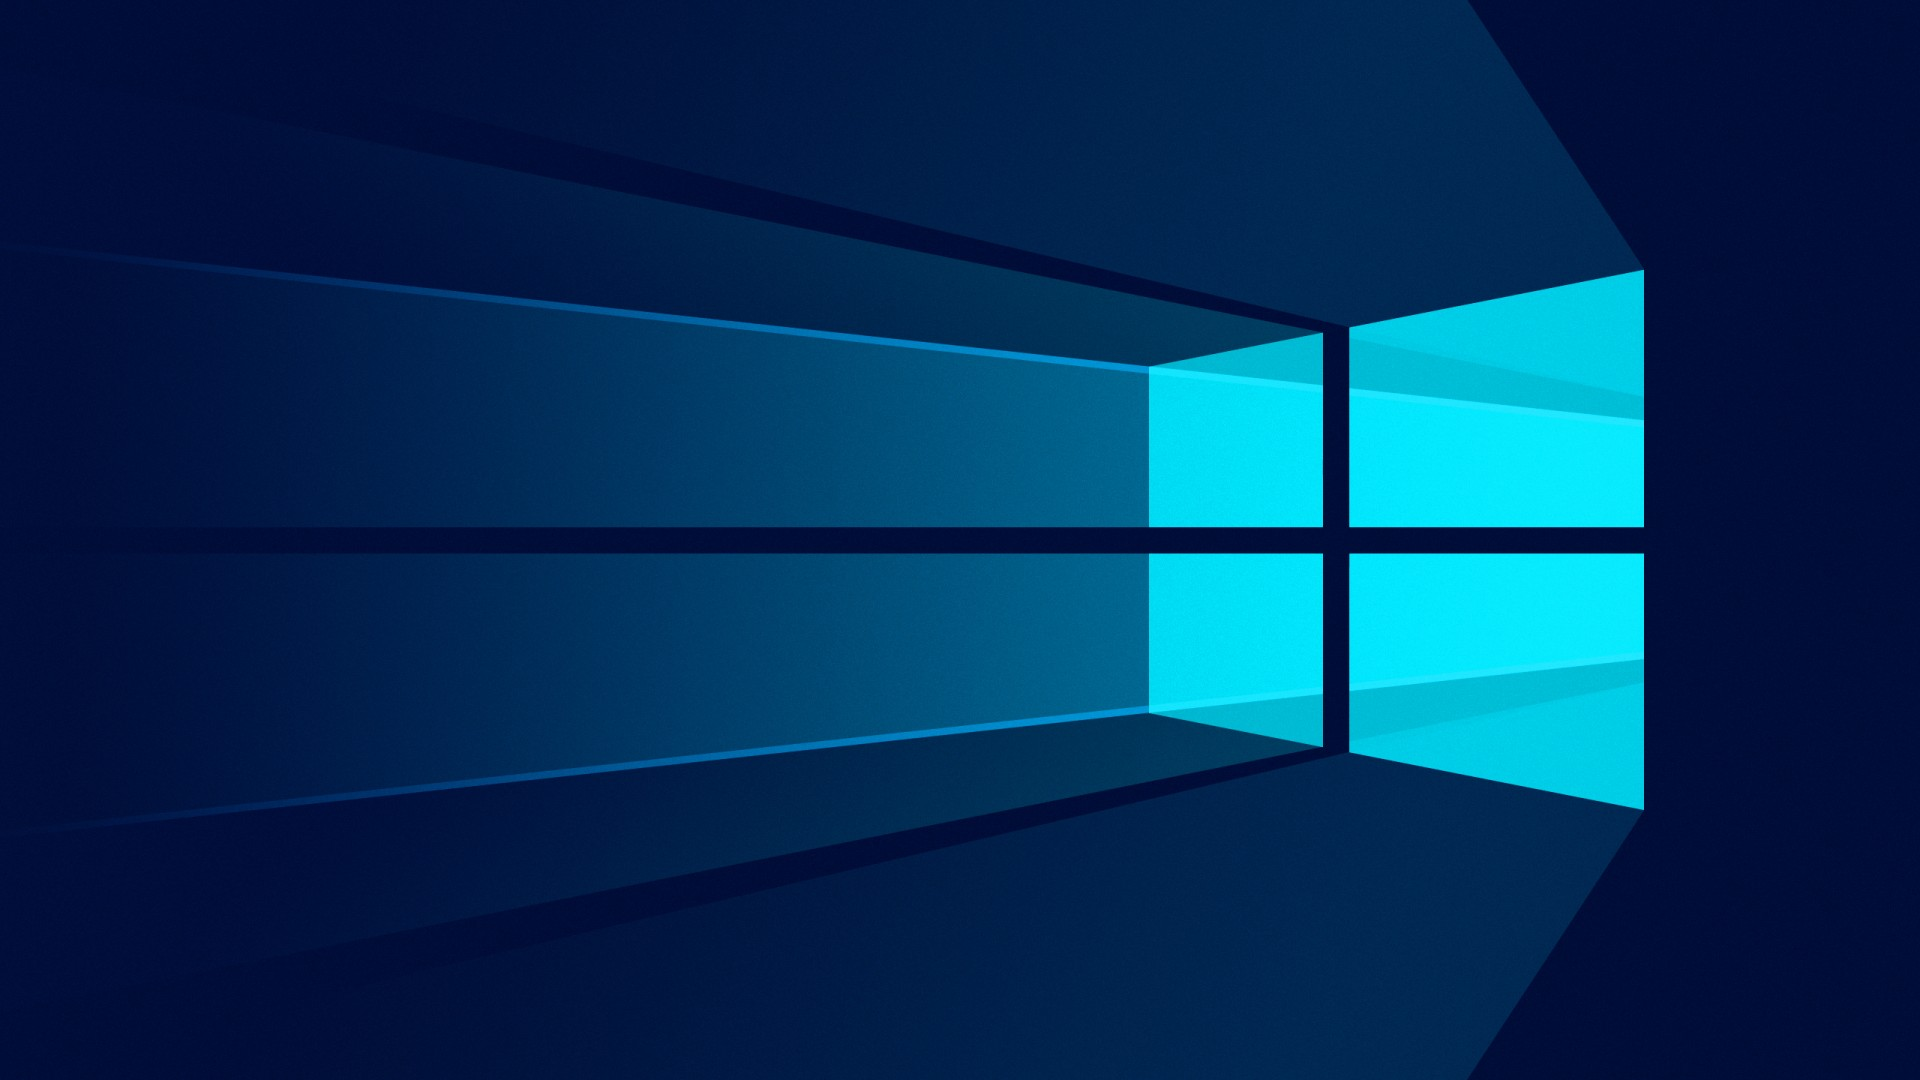 Windows 10 1920x1080 full hd en fondos 1080 for Fondo de pantalla 1080 x 1920